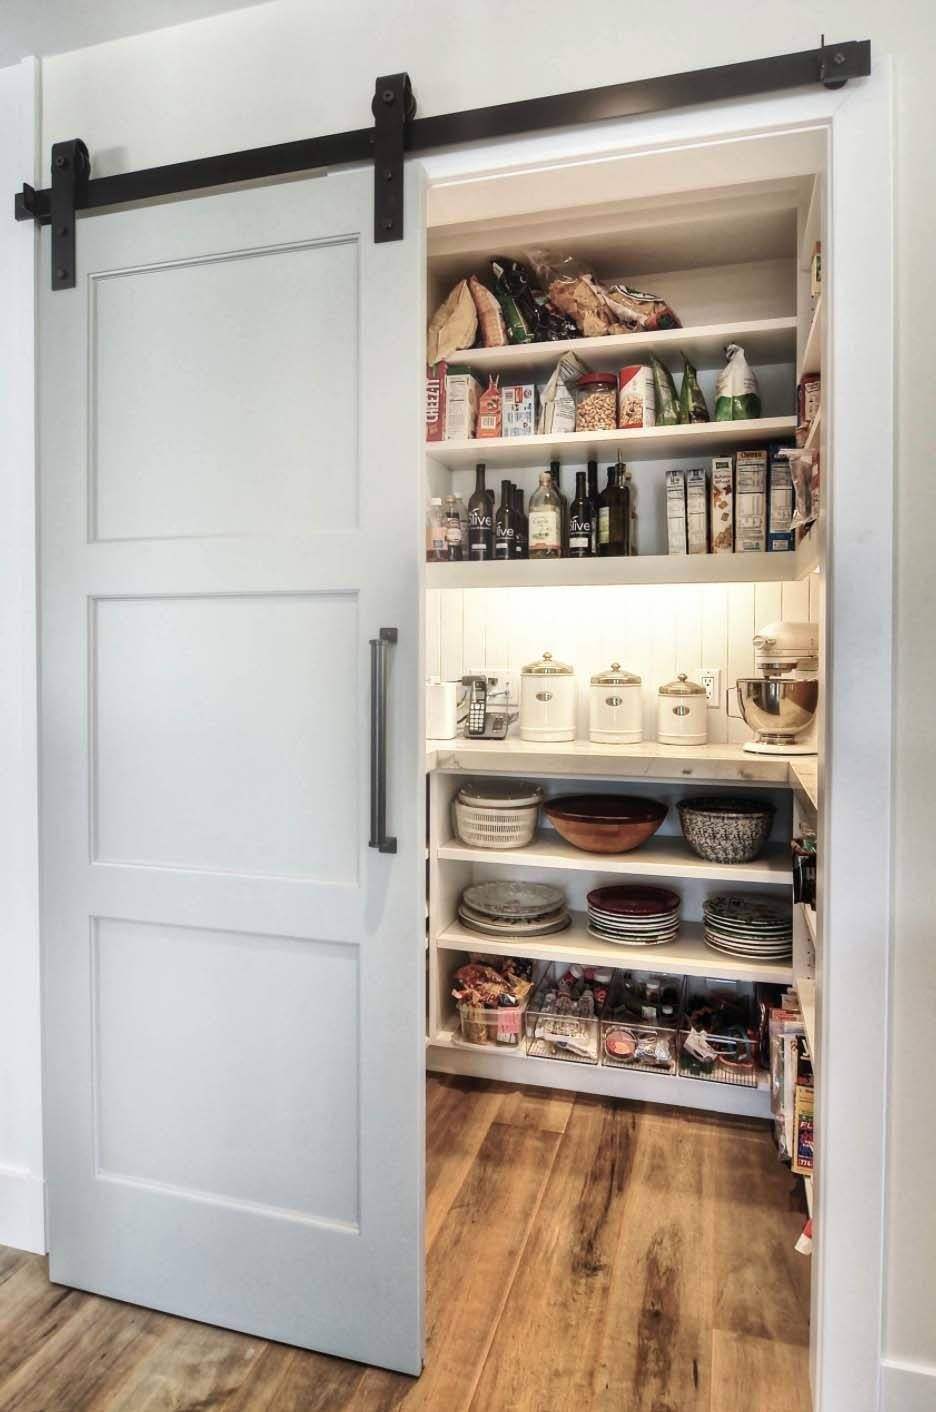 35 Clever ideas to help organize your kitchen pantry | Kitchen ...